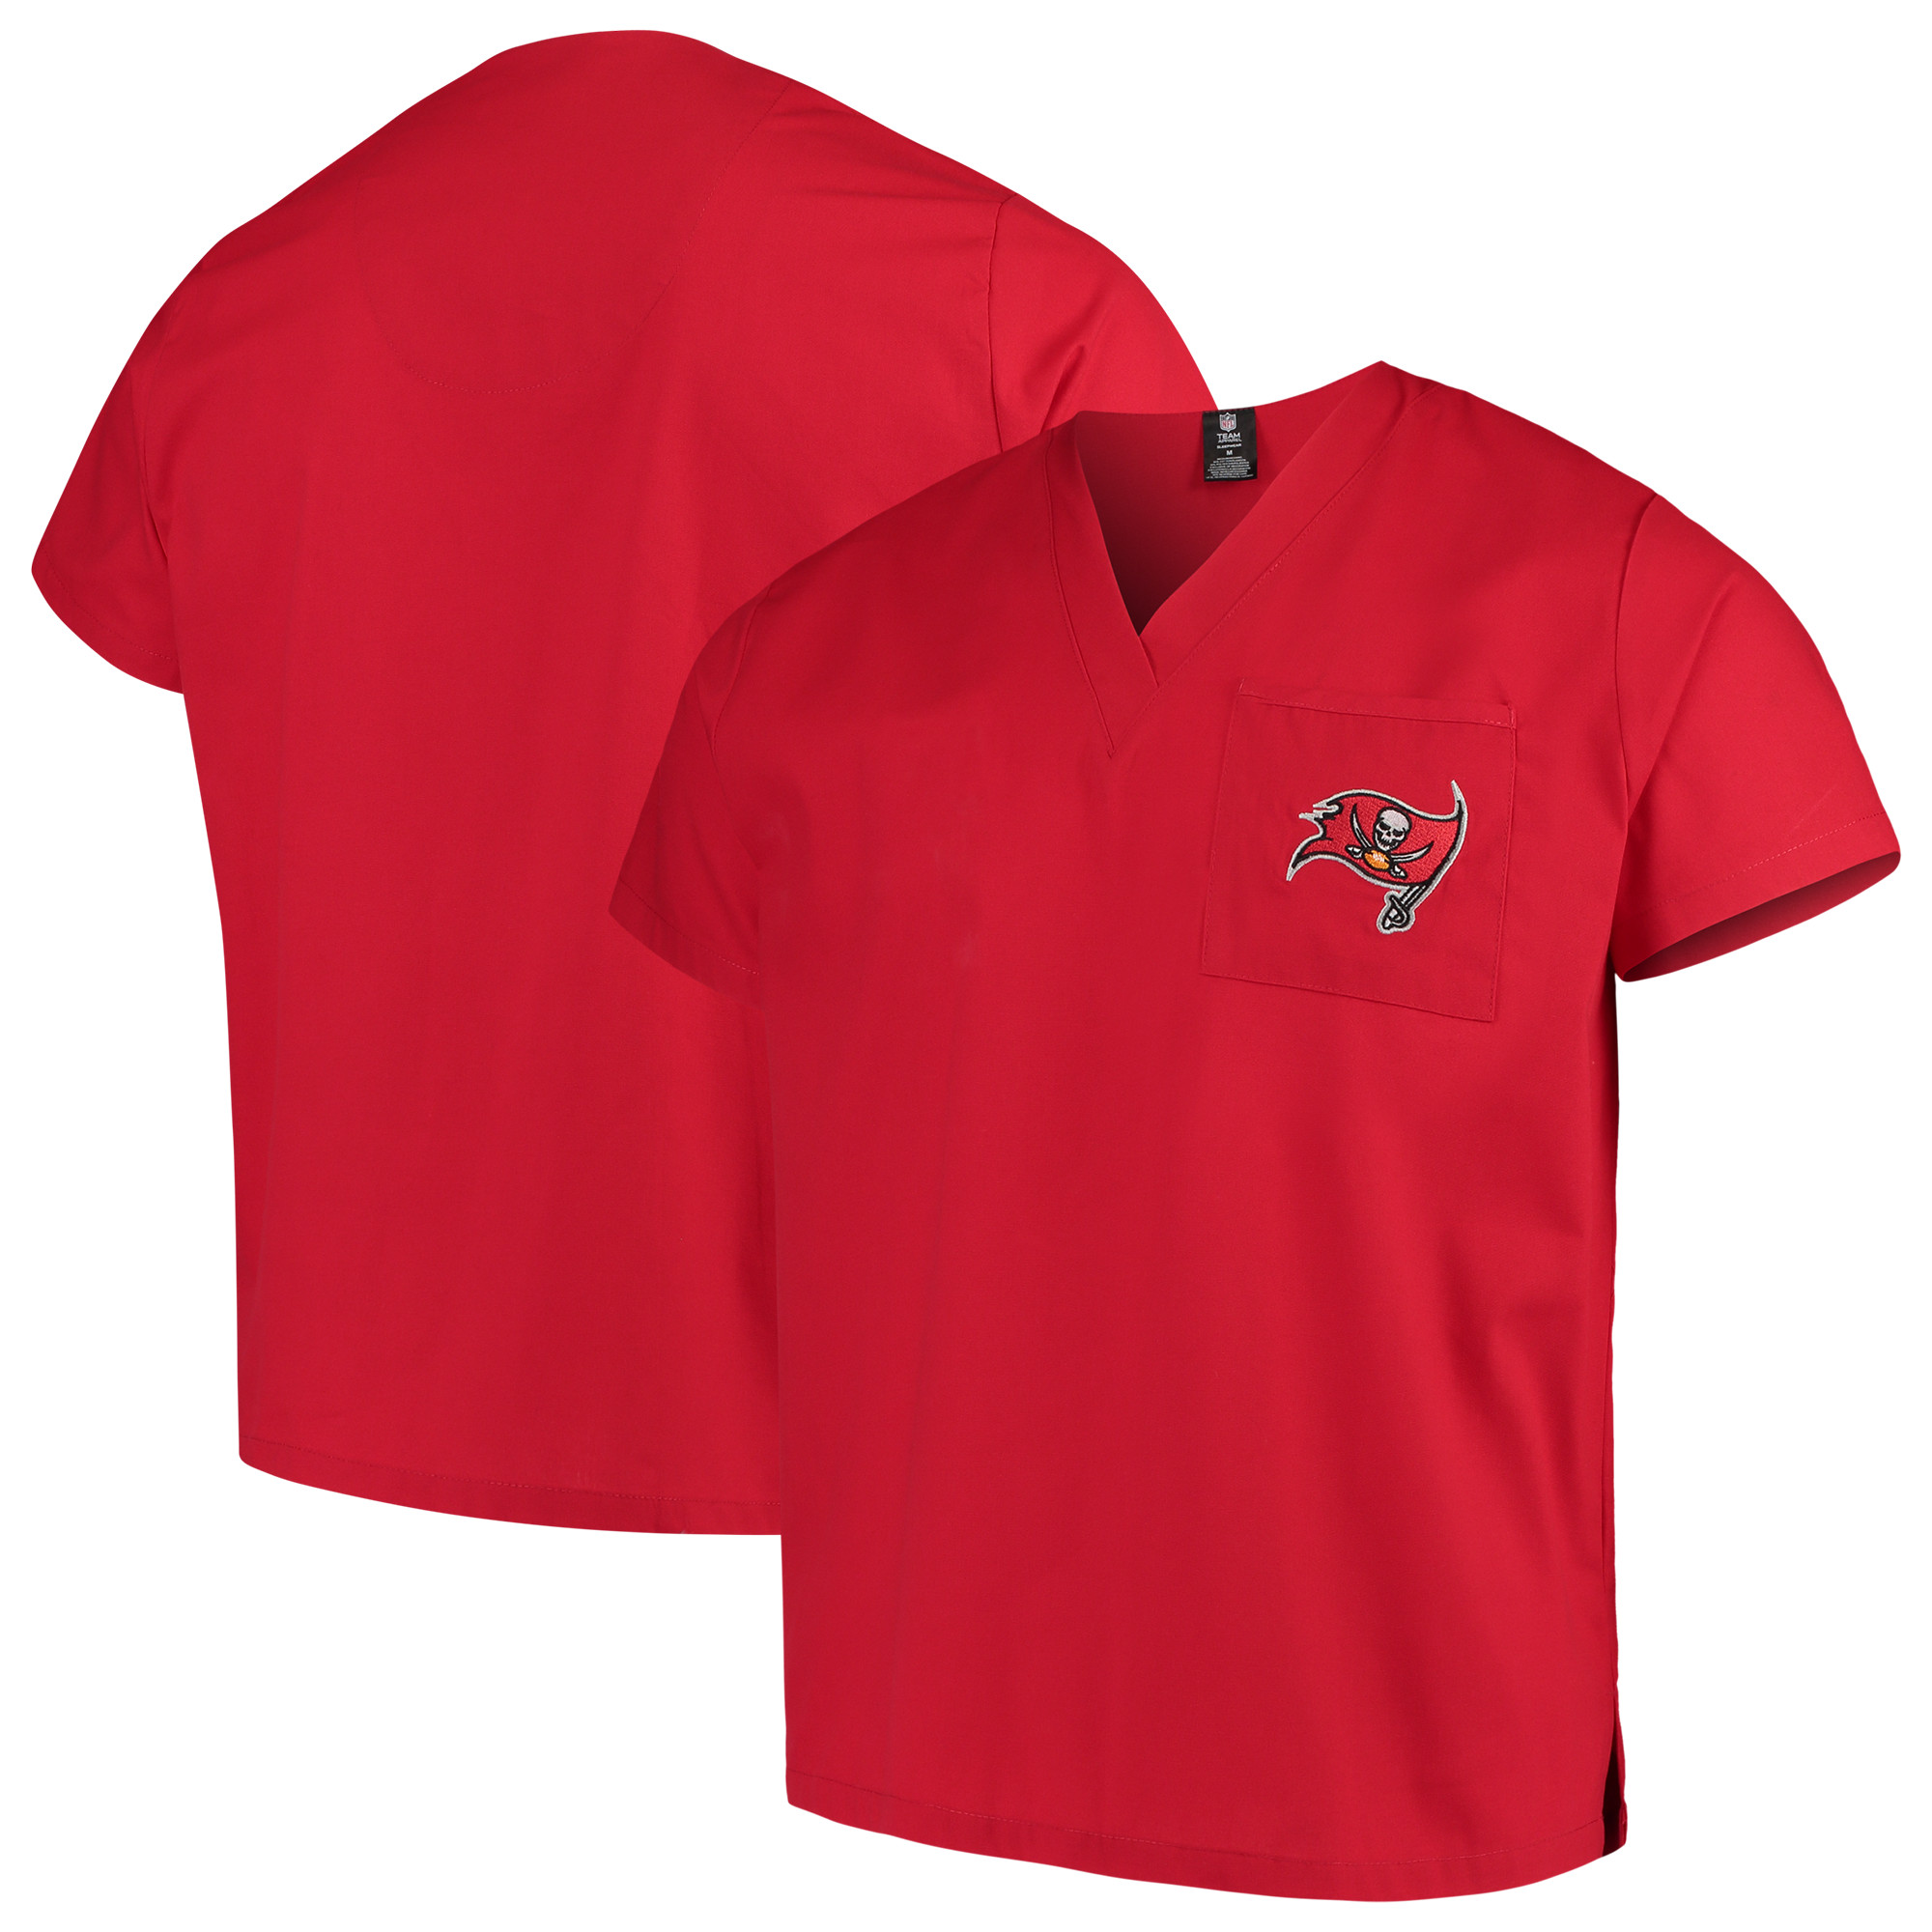 Tampa Bay Buccaneers Concepts Sport Scrub Top - Red